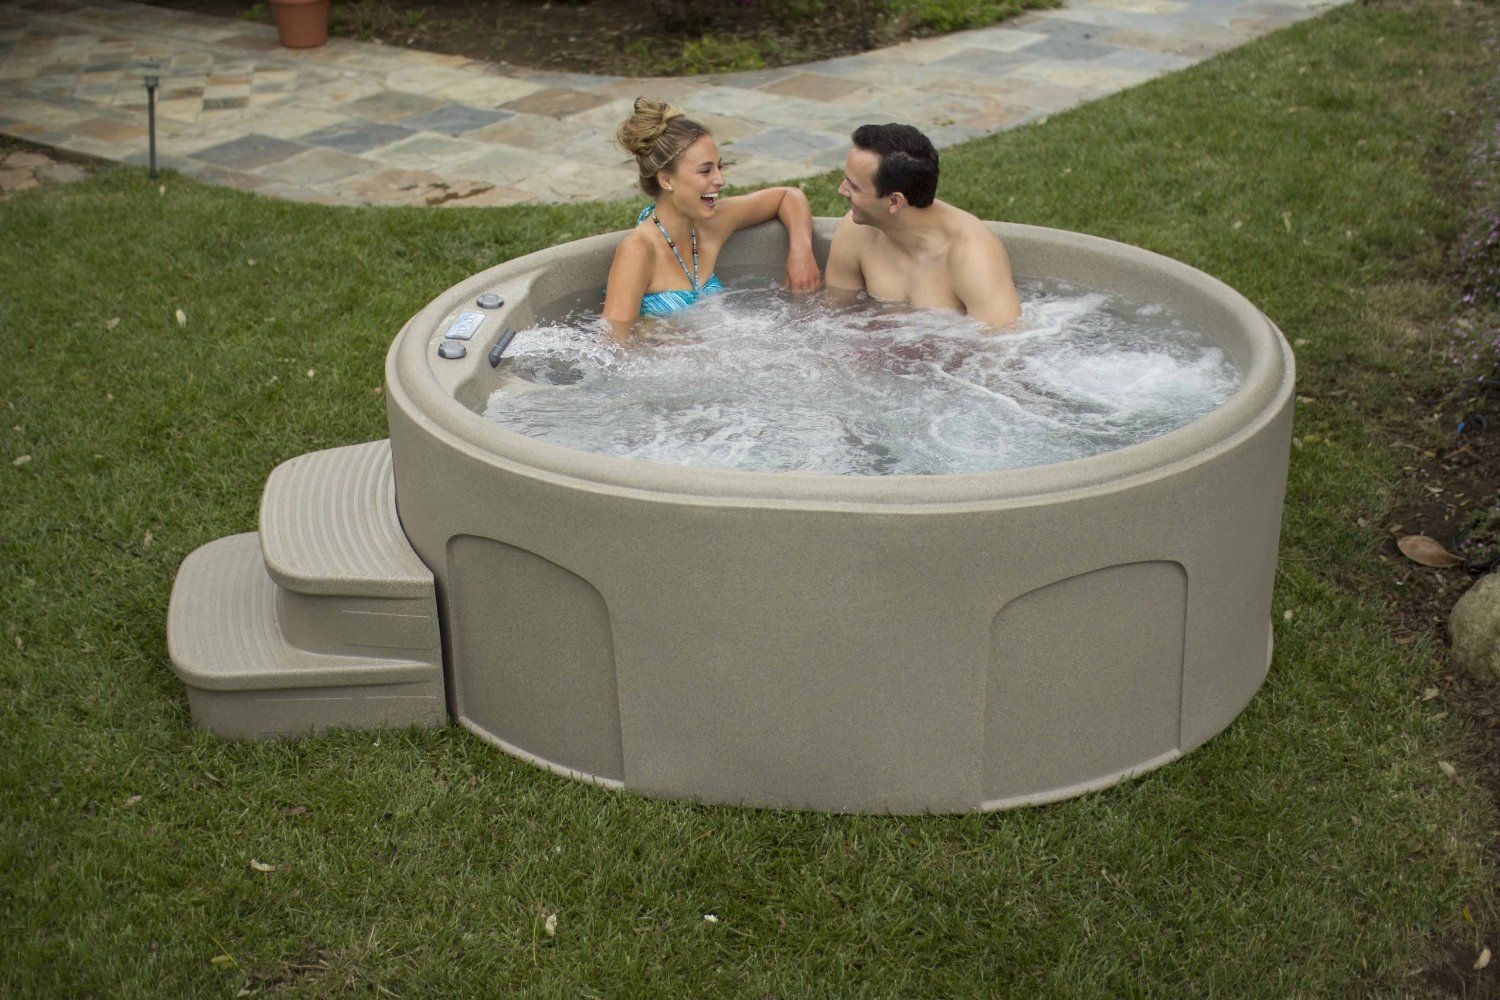 dlx lifesmart jet pdx hot person play system ozone and plug spas reviews spa outdoor luna with waterfall wayfair tub